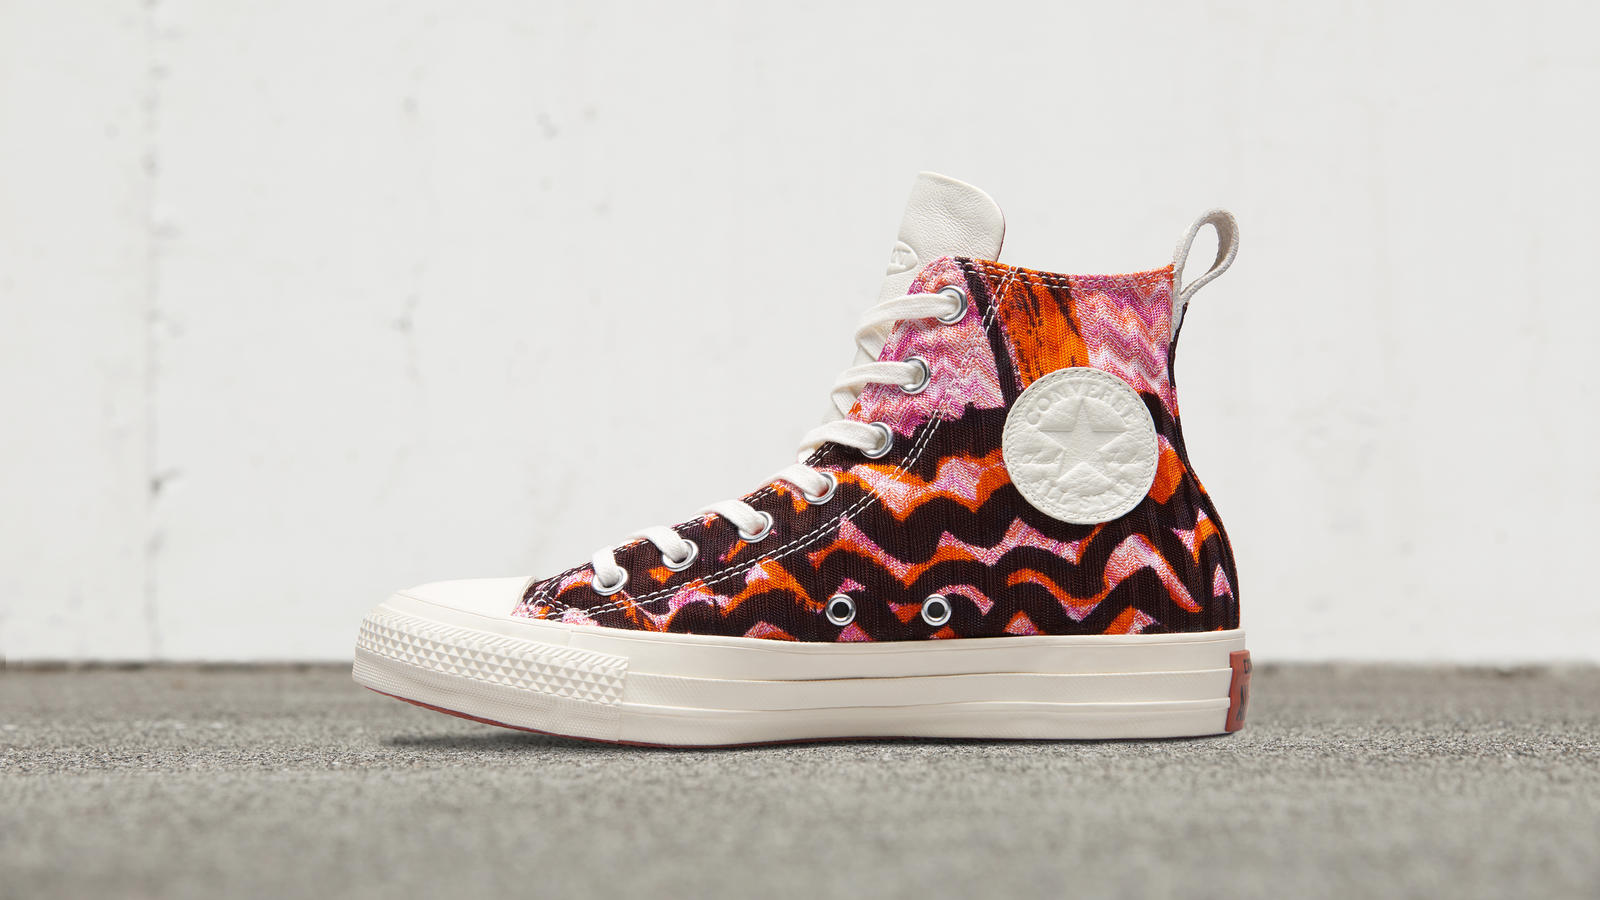 160823 converse missoni 154441 profile main hd 1600